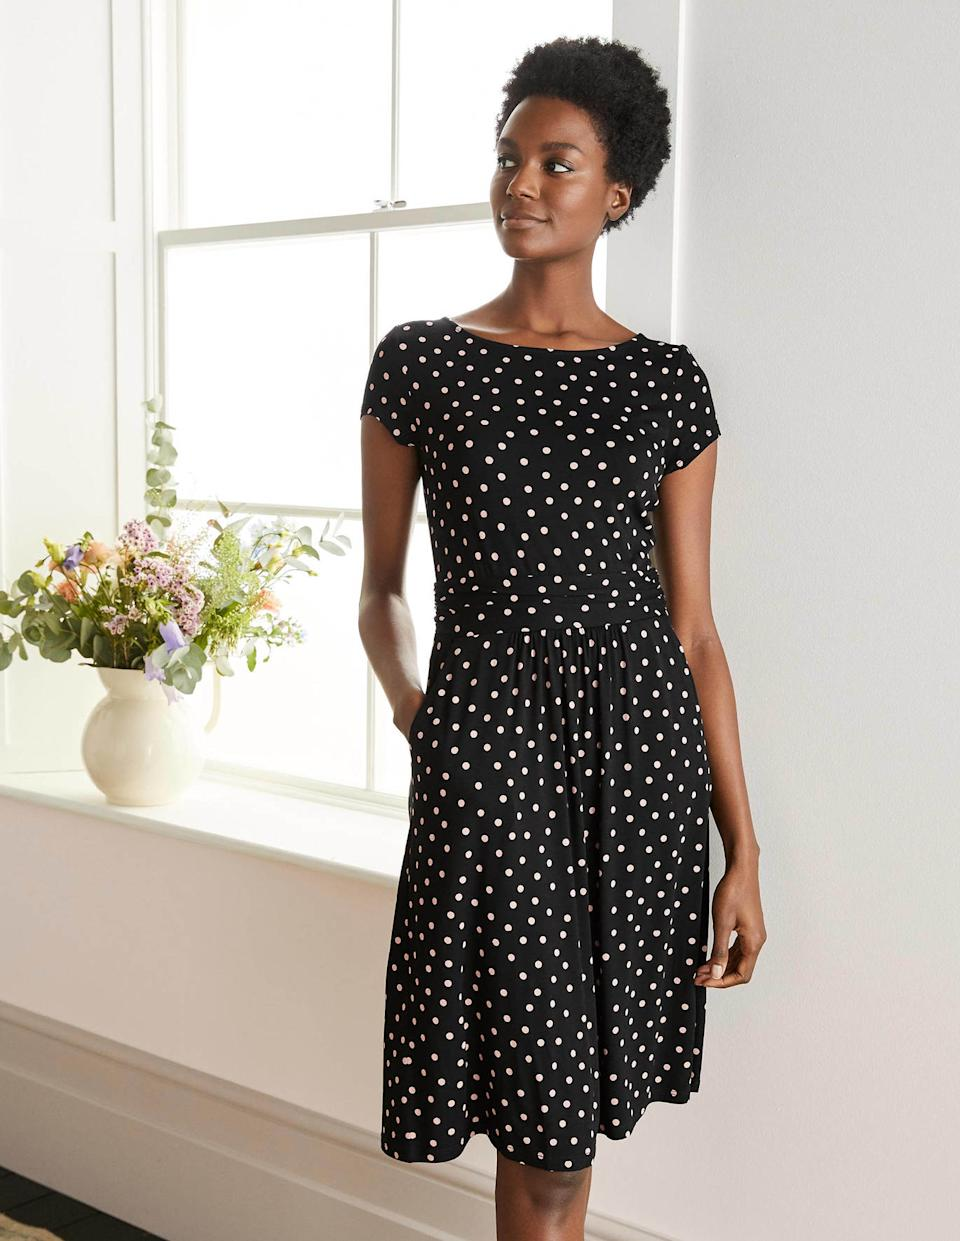 Boden's Amelie dress comes in various prints, patterns and colours.  (Boden)